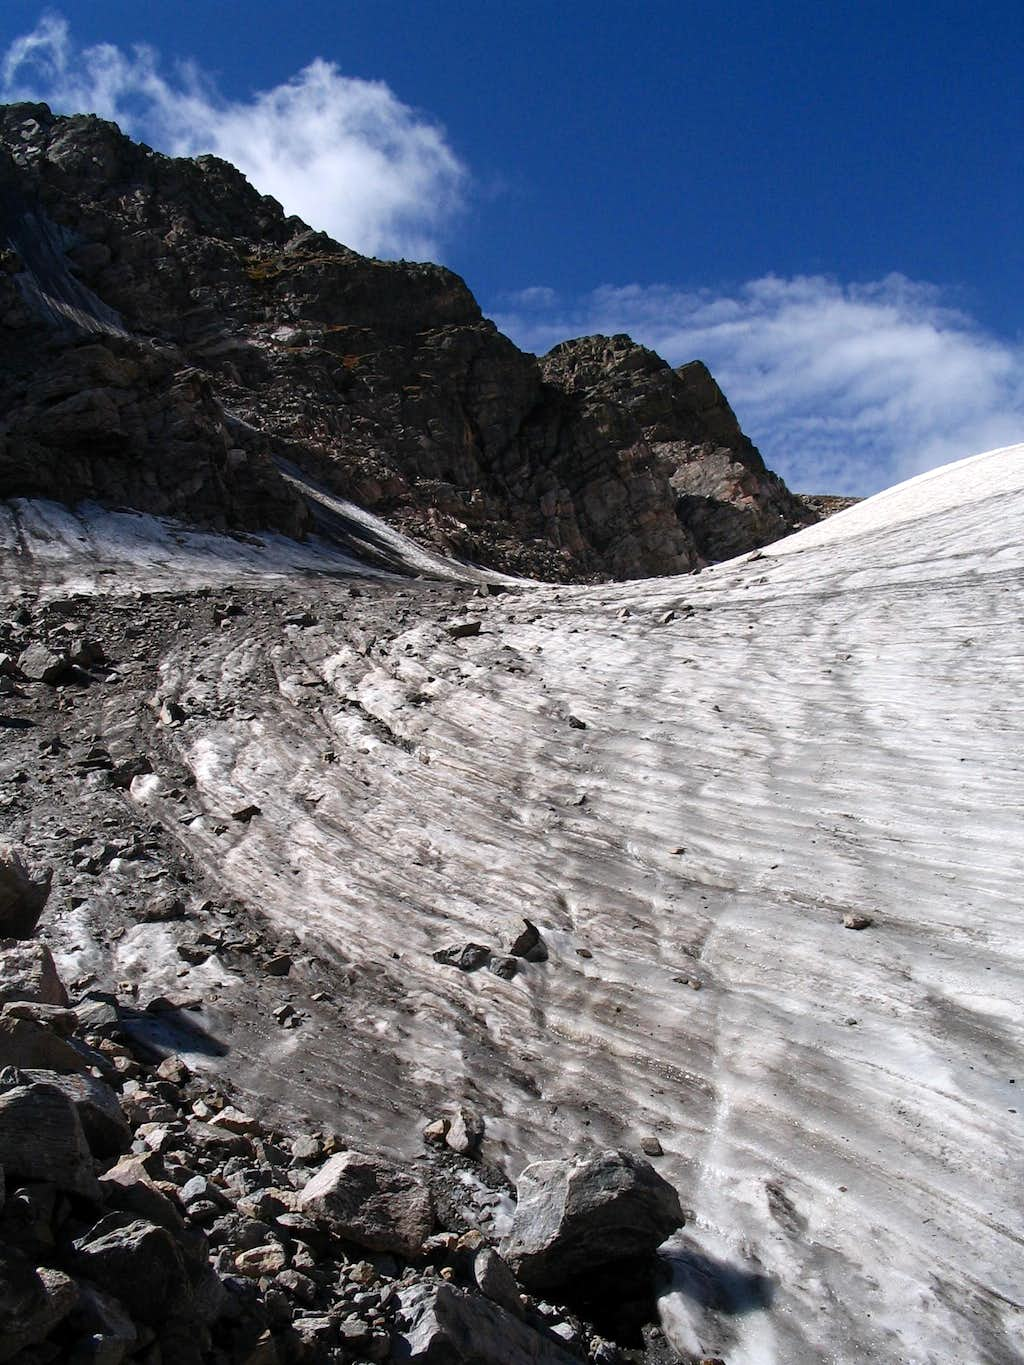 Andrews Glacier in Late Summer Condition